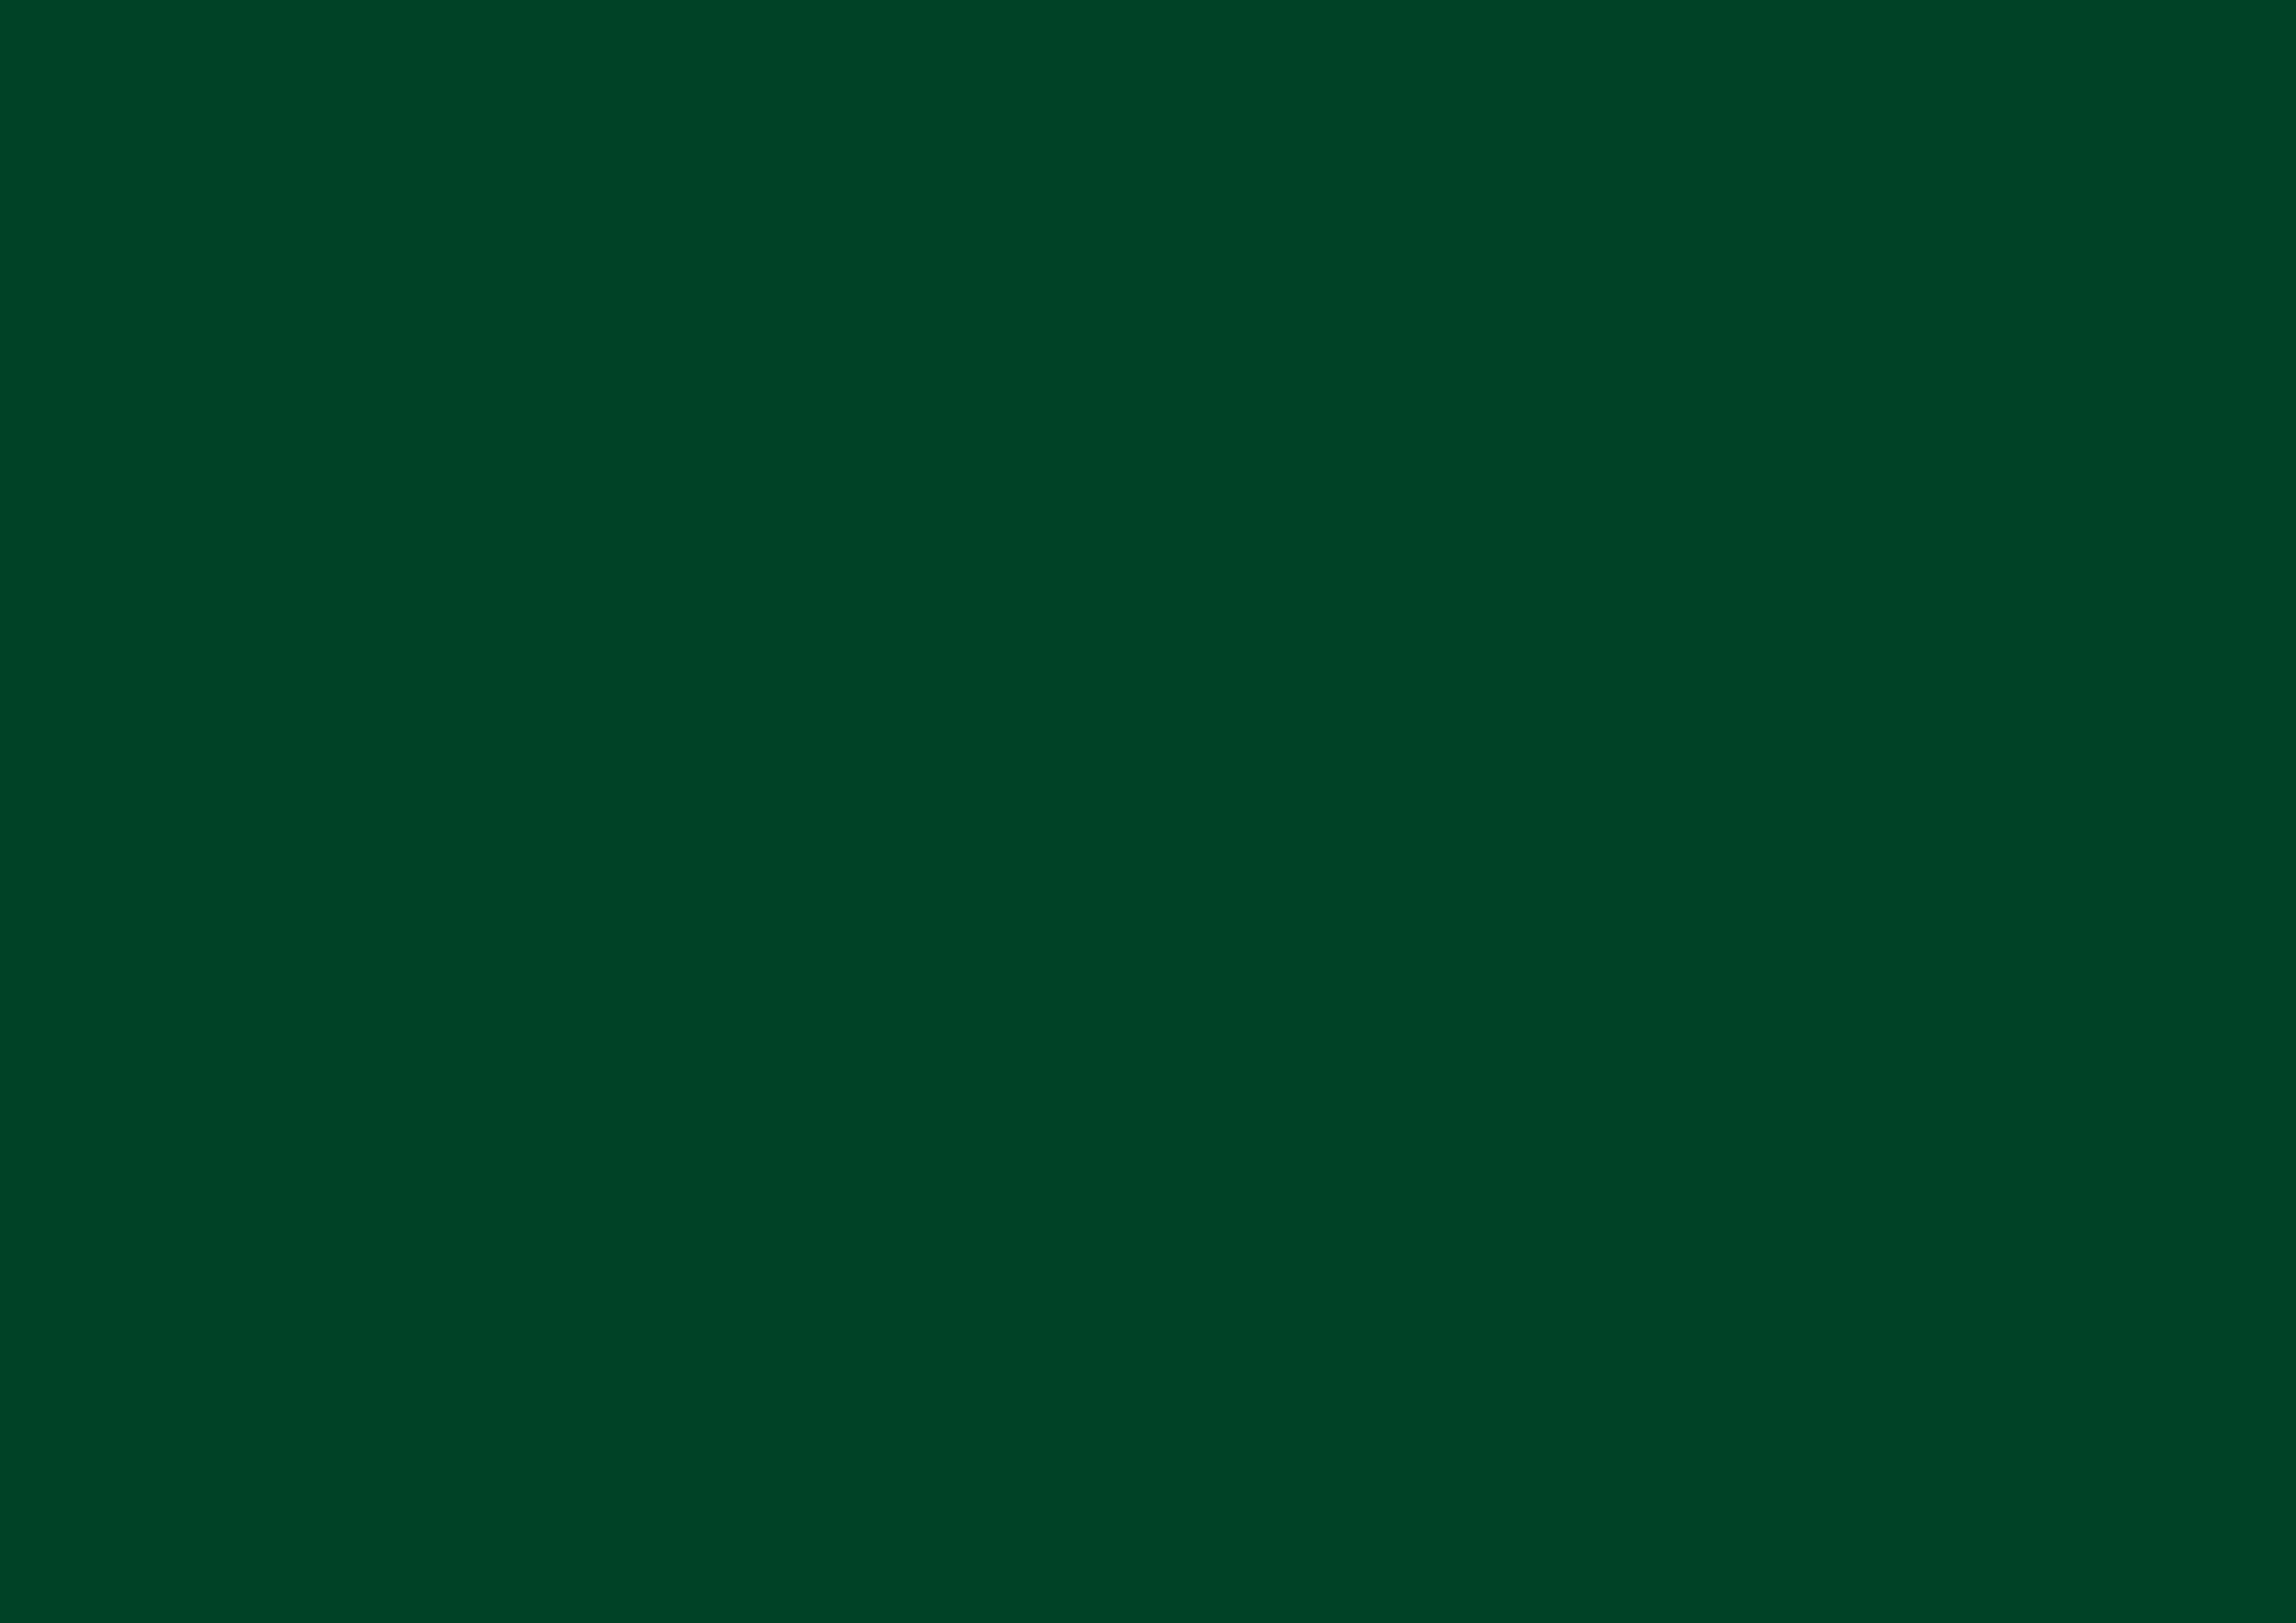 3508x2480 British Racing Green Solid Color Background